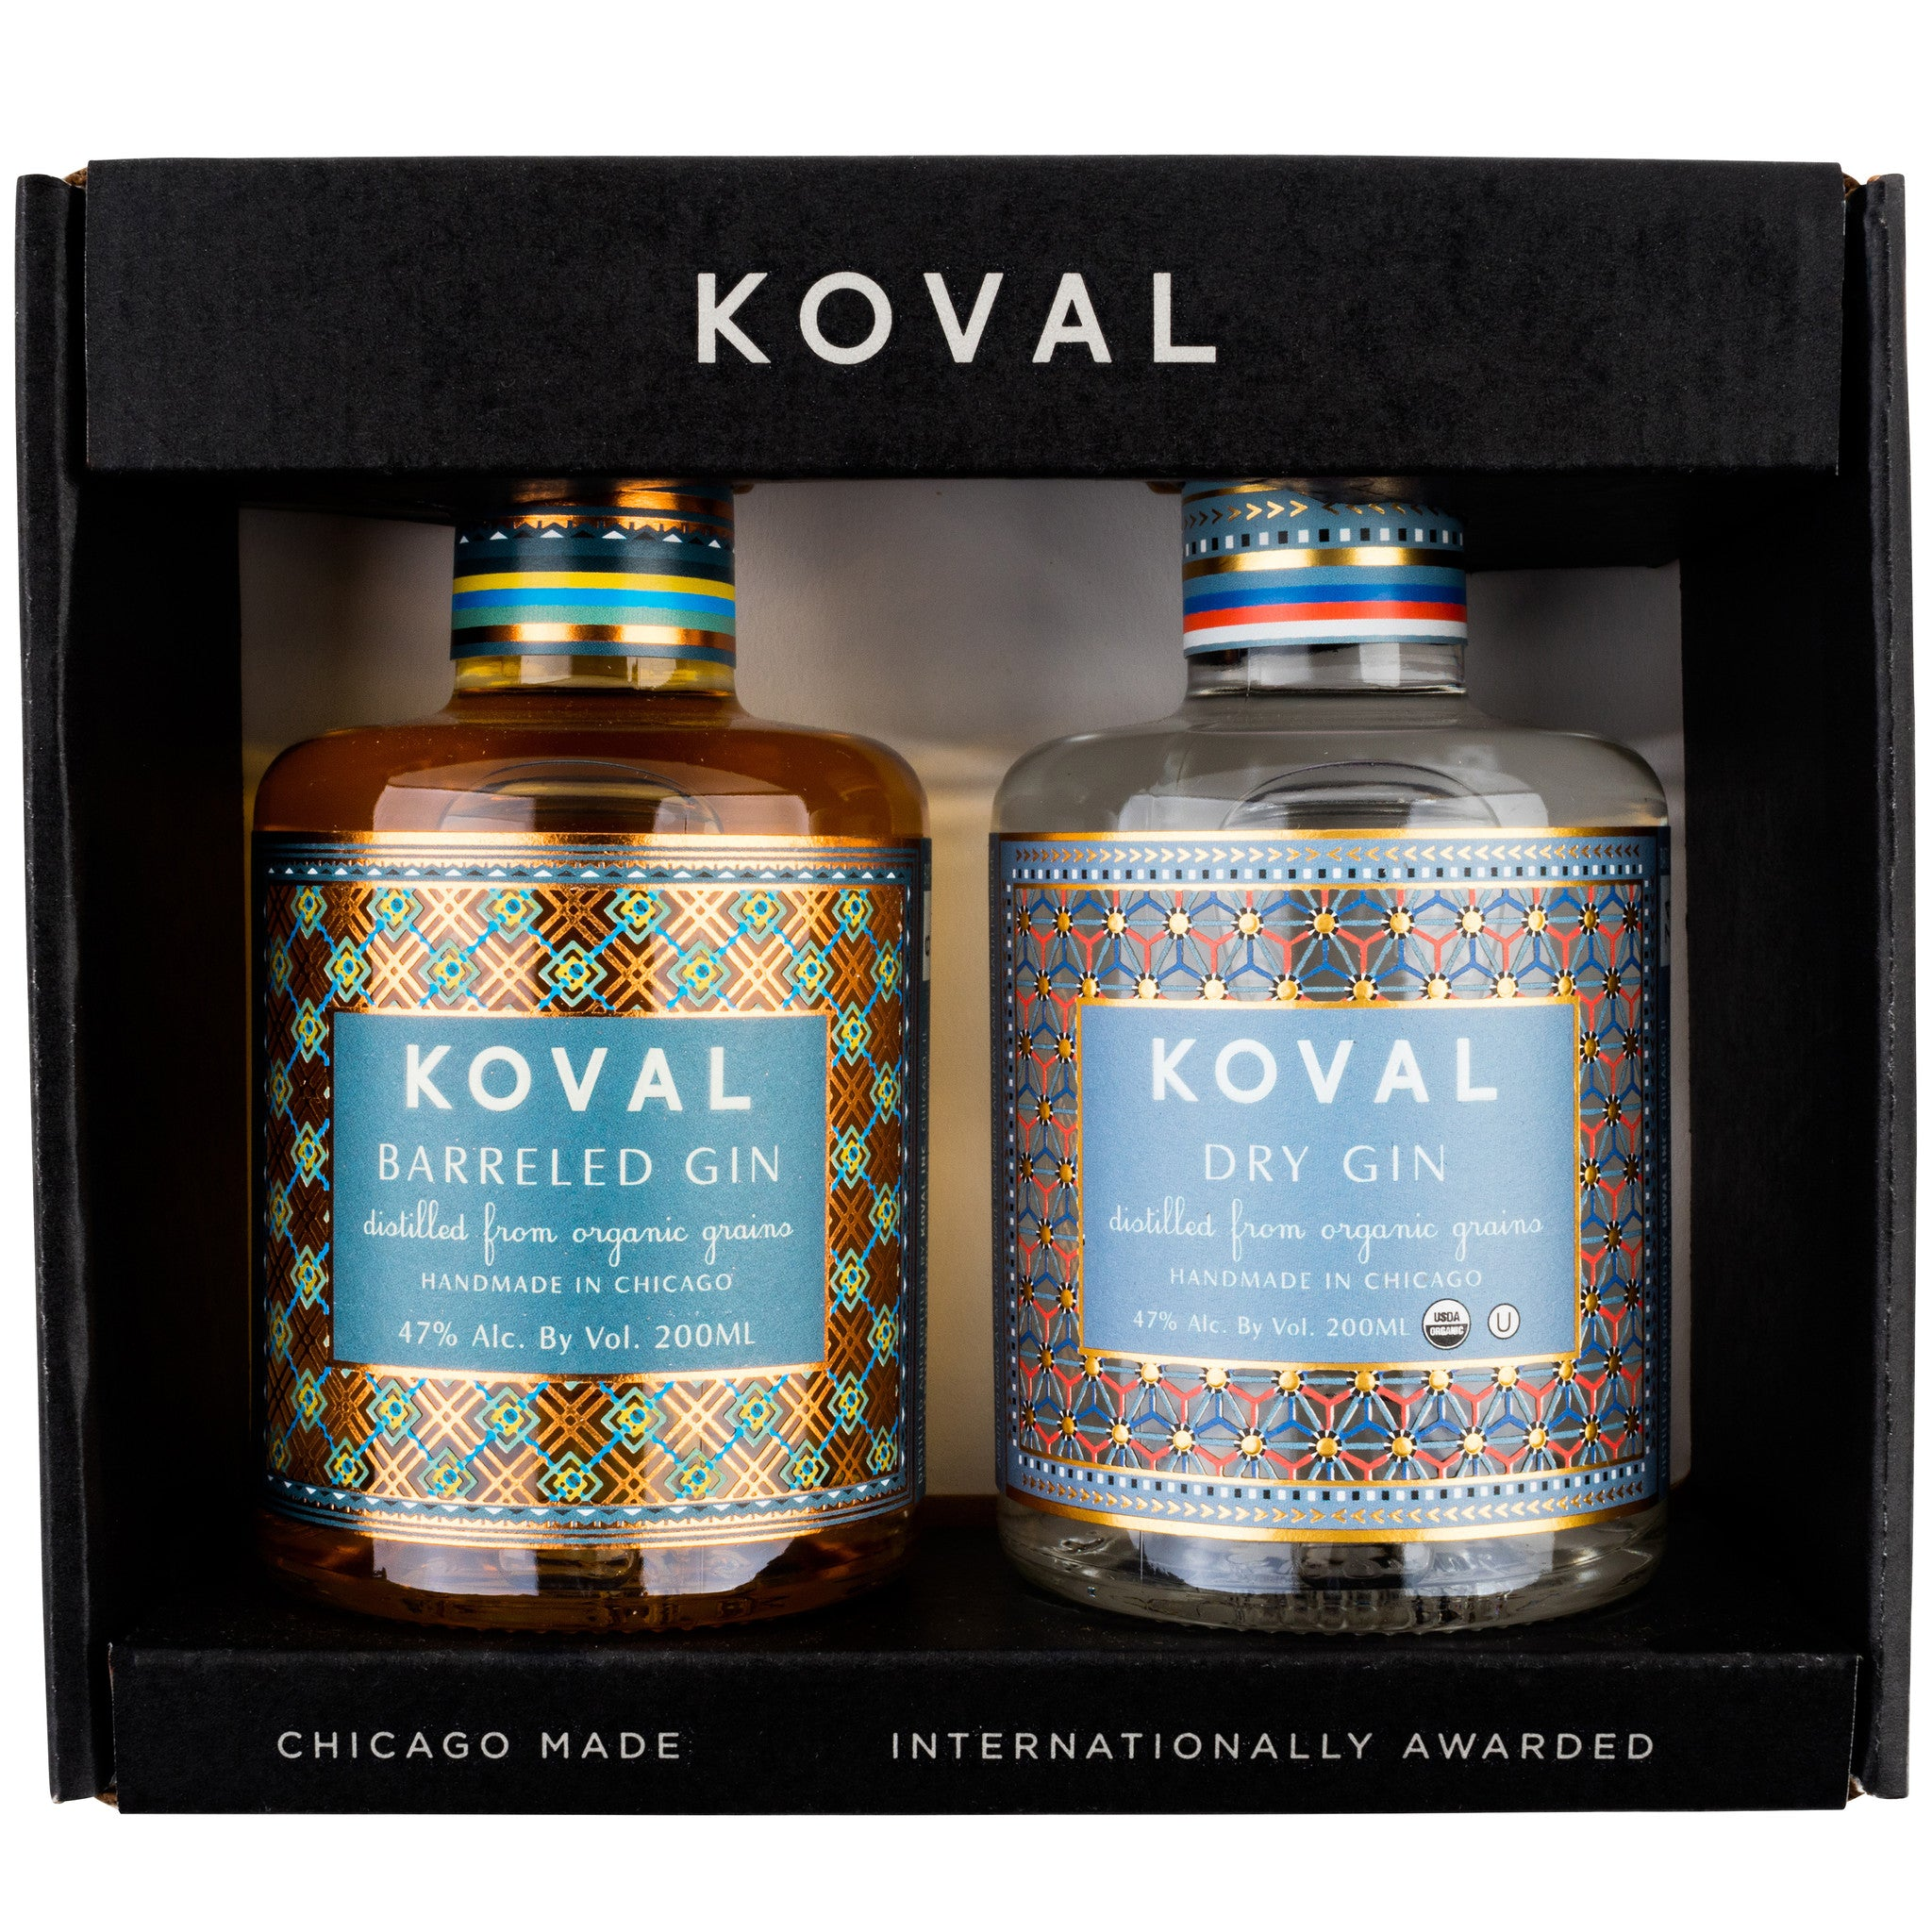 "If you're like us, the beautiful labels on these bottles are what first caught your eye. But these aren't just one of those ""beauty on the outside"" products. The spirits inside the bottles are just as thoughtfully and creatively crafted. Koval's dry gin is made with a unique blend of woodland spices and has an herbal, earthy quality with notes of juniper and wildflowers. The taste? A complex mix of citrus and floral traces followed by pepperiness. This is a clean, dry, yet vibrant gin that's crisp enough to enjoy straight and, of course, excellent in both classic and contemporary cocktails. The distillery's Barreled Gin follows the same recipe with the additional flavors of spiced oak that come from aging in whiskey barrels for six months. The combination makes a great gift for gin connoisseurs on the lookout for something outside the realm of the ordinary. Gin up, folks! TIP OF THE TONGUE Koval has an awesome recipe for a gimlet... a basil gimlet! Muddle 4-5 basil leaves, 2 lime wedg"